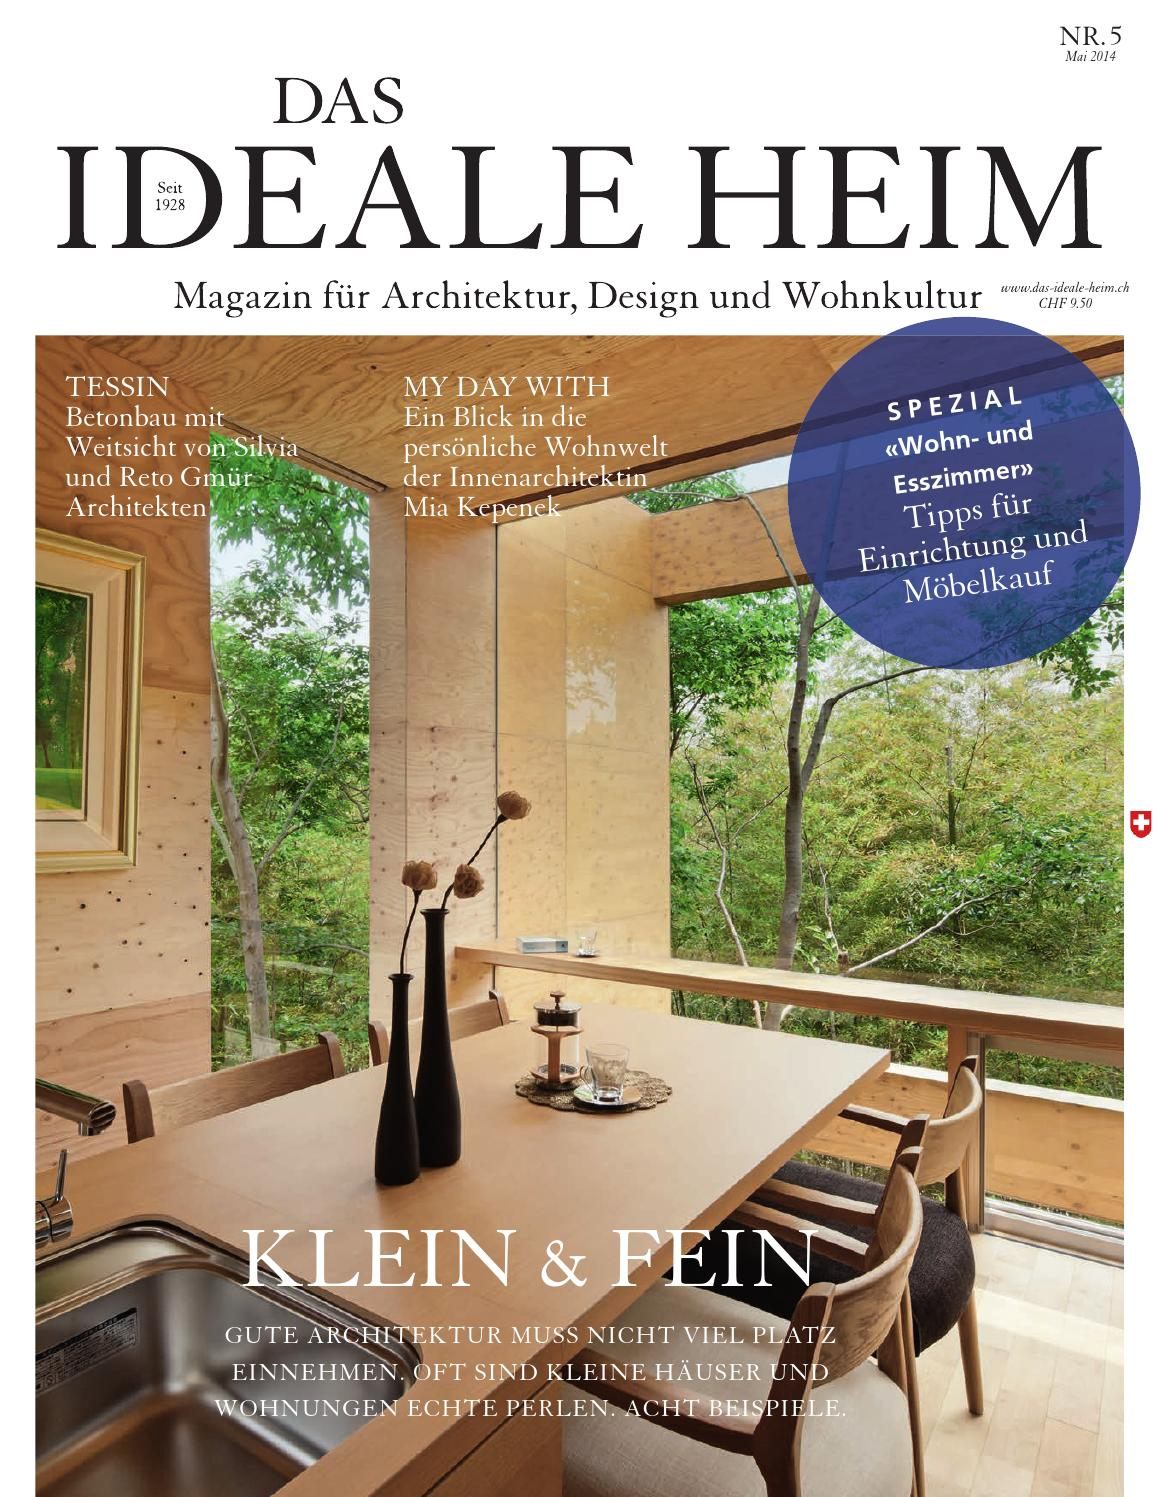 Das Ideale Heim 05 2014 By Archithema Verlag Issuu